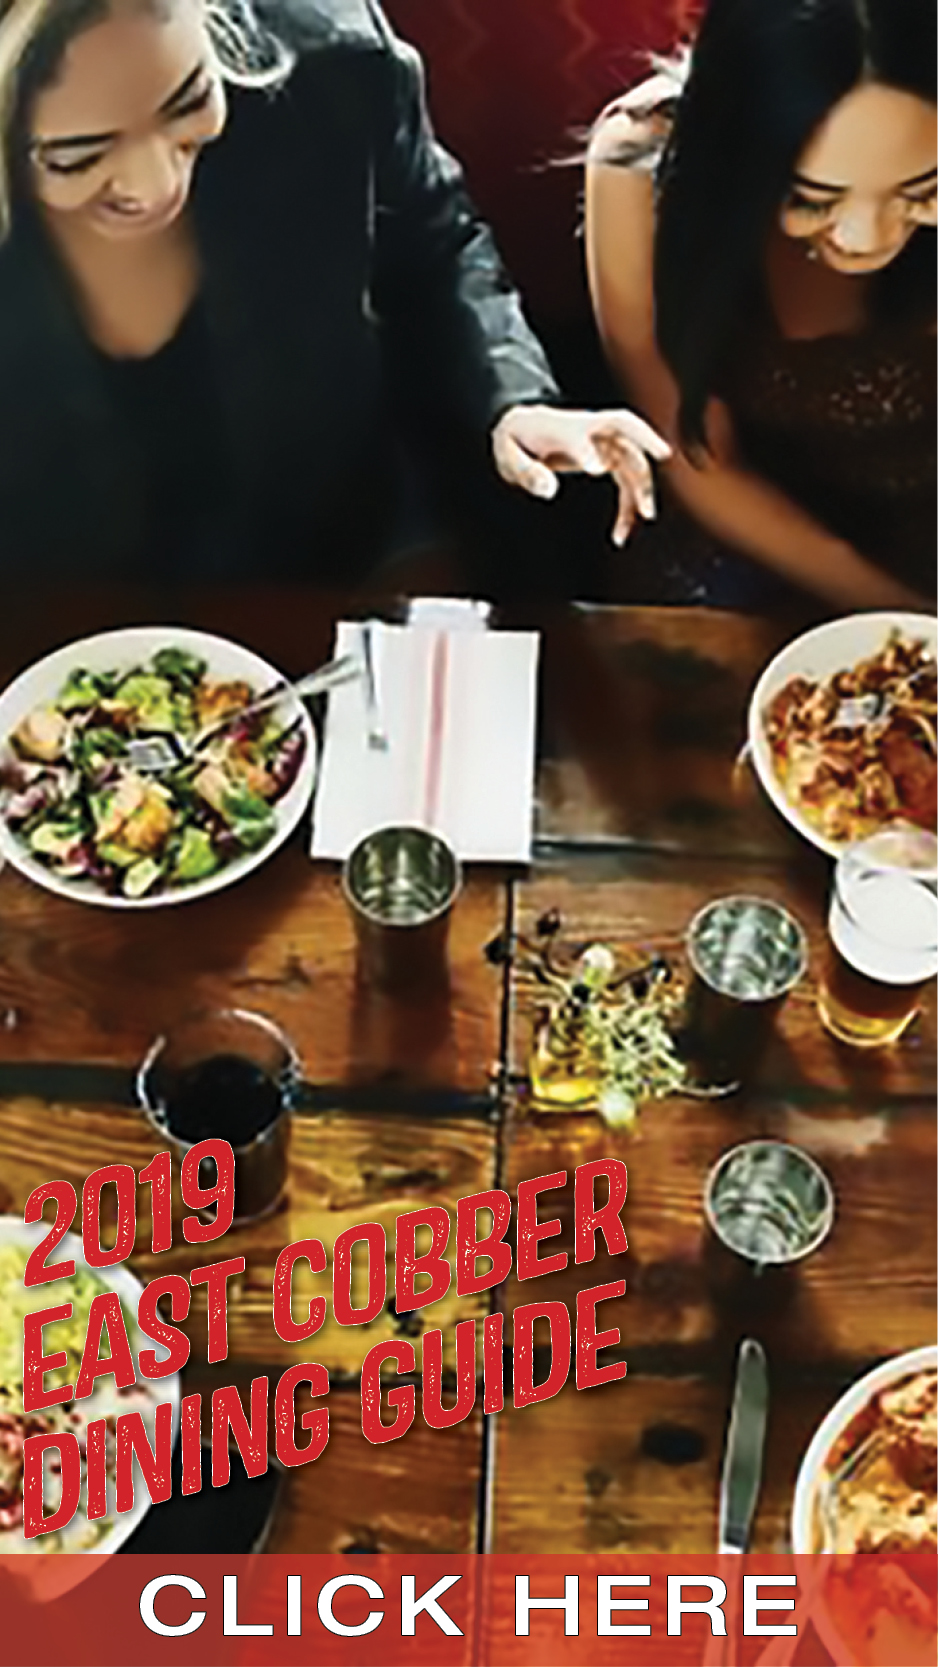 Download the 2019 East Cobber Dining Guide